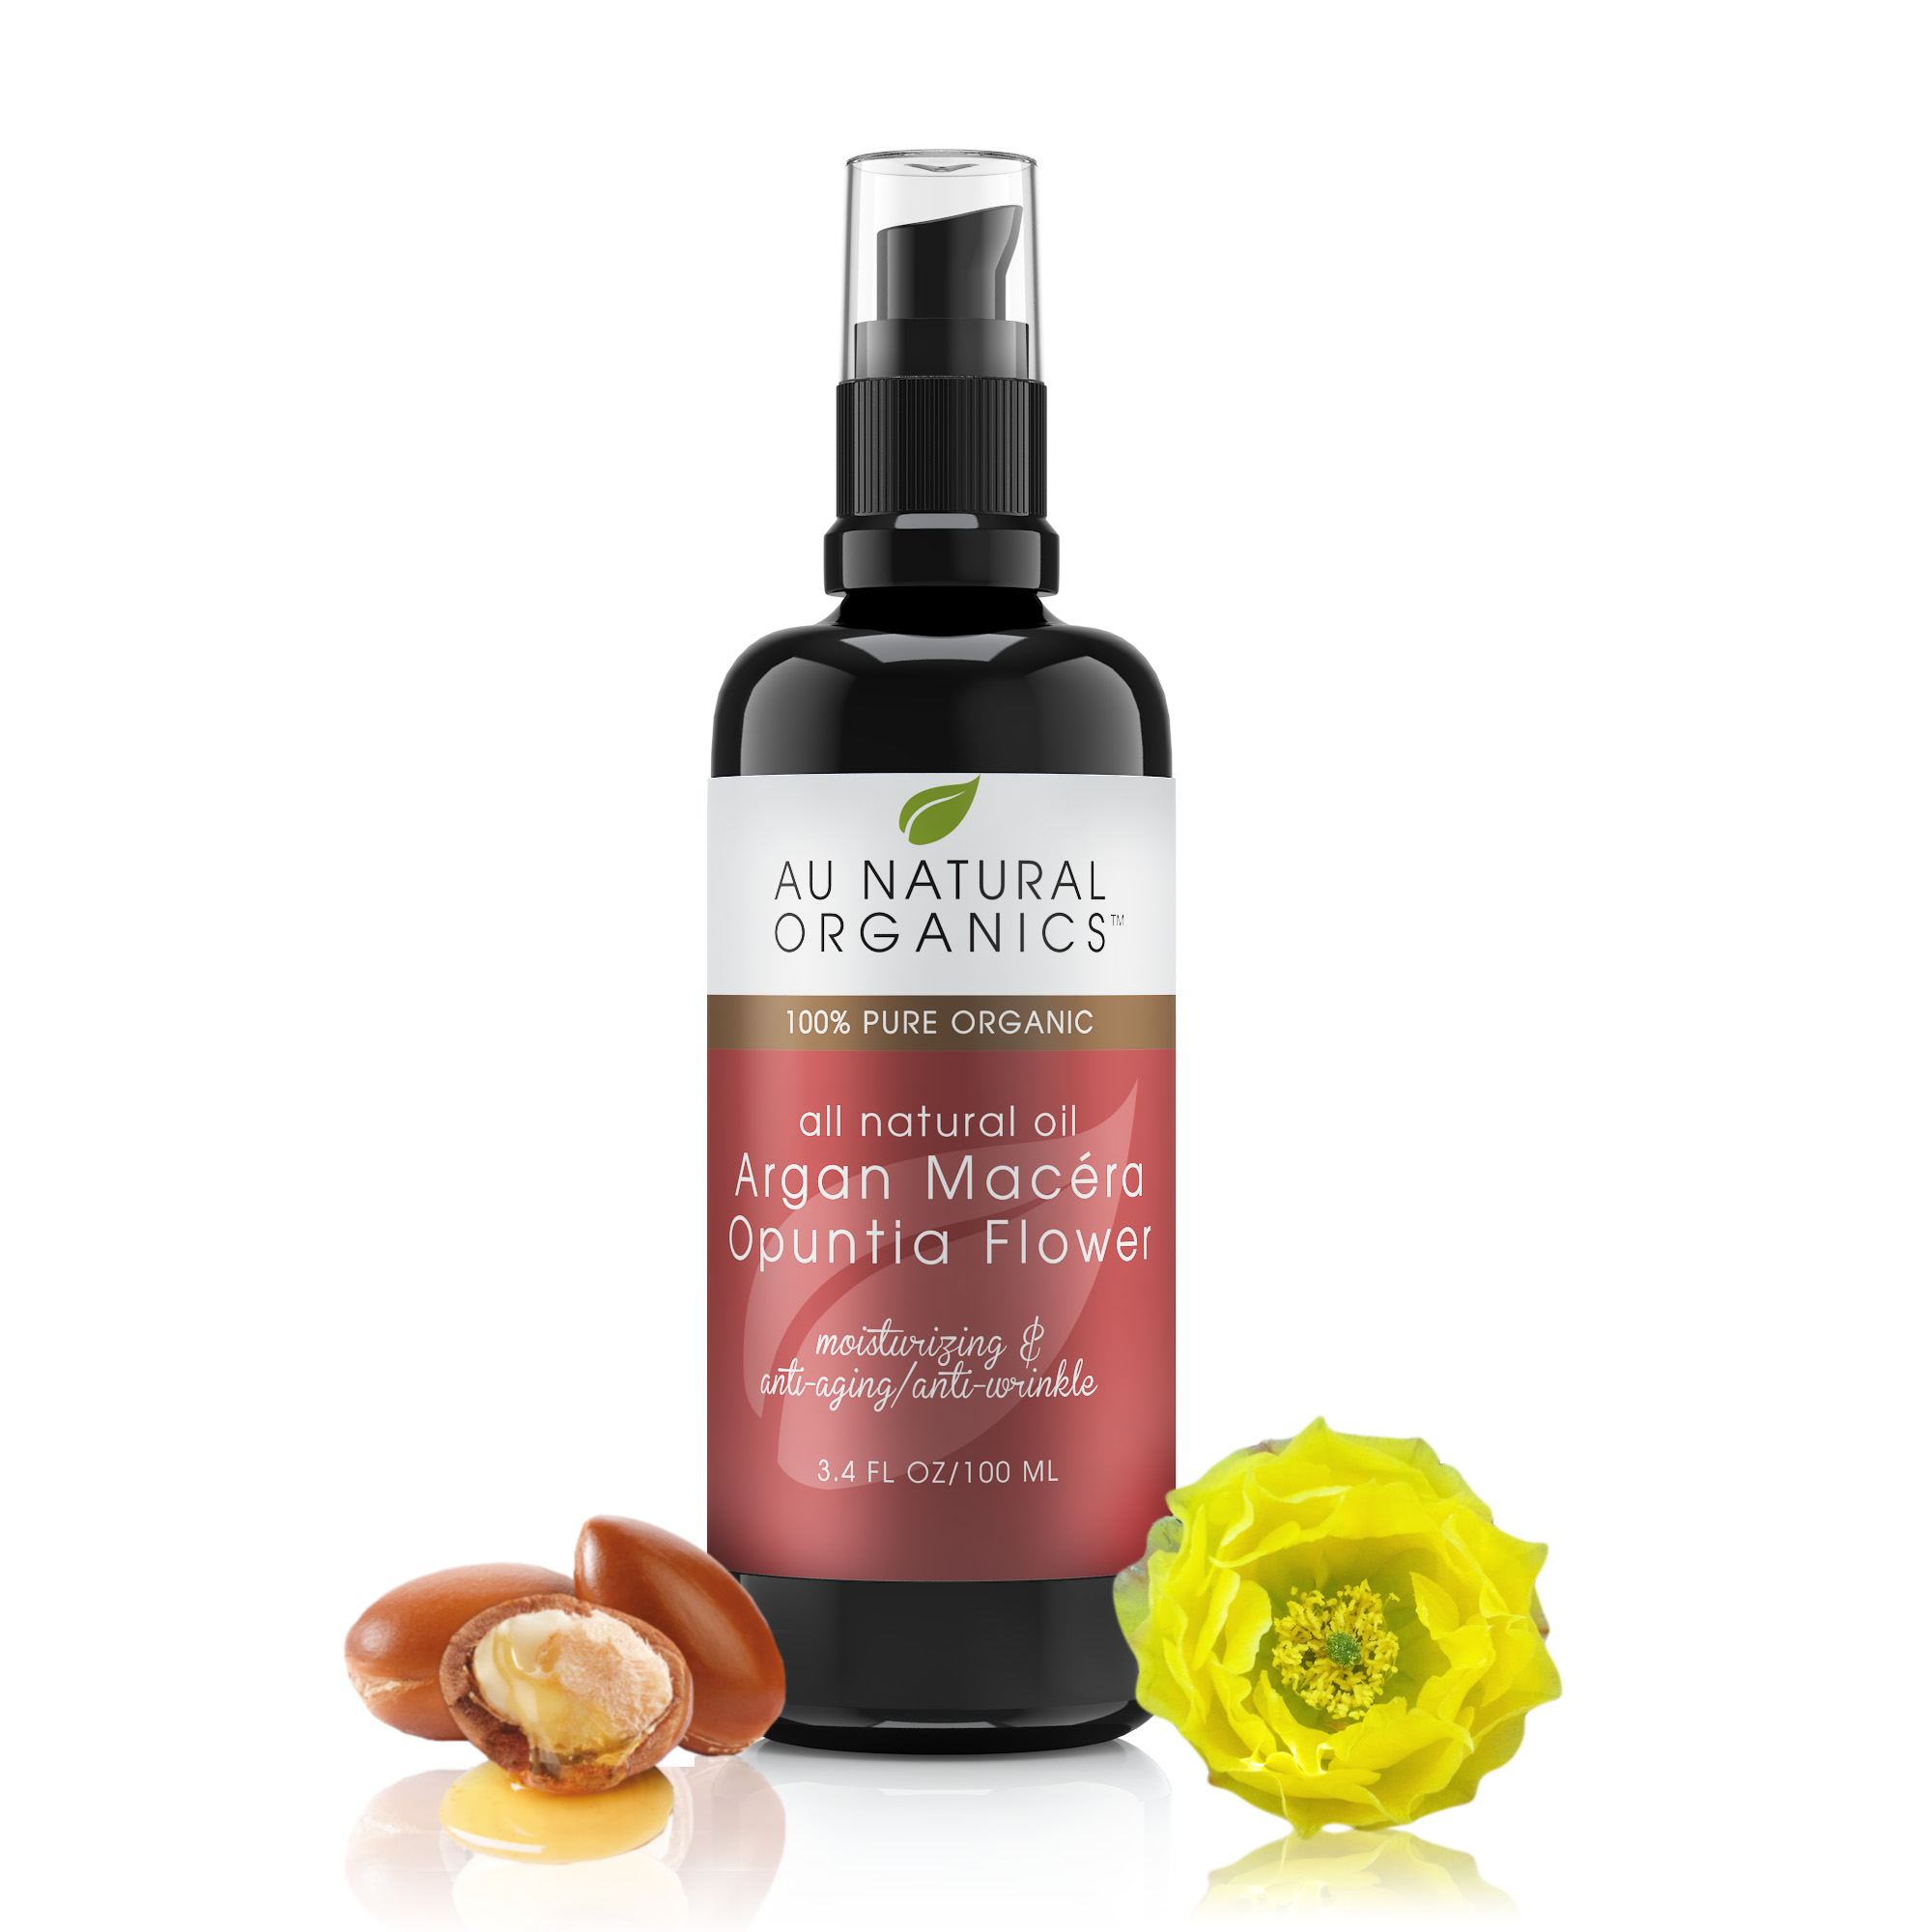 Argan Opuntia Macera Oil is a maceration of cacti flowers in argan oil. A macerated oil is an infusion of plant parts in a selected oil. In this instance, the cacti flowers are chopped up into small parts and added to the argan oil. It is all mixed together and left to macerate in sunlight for as long as needed. The resulting oil is filtered to remove the plant material. Argan Opuntia Macera oil is made up of: